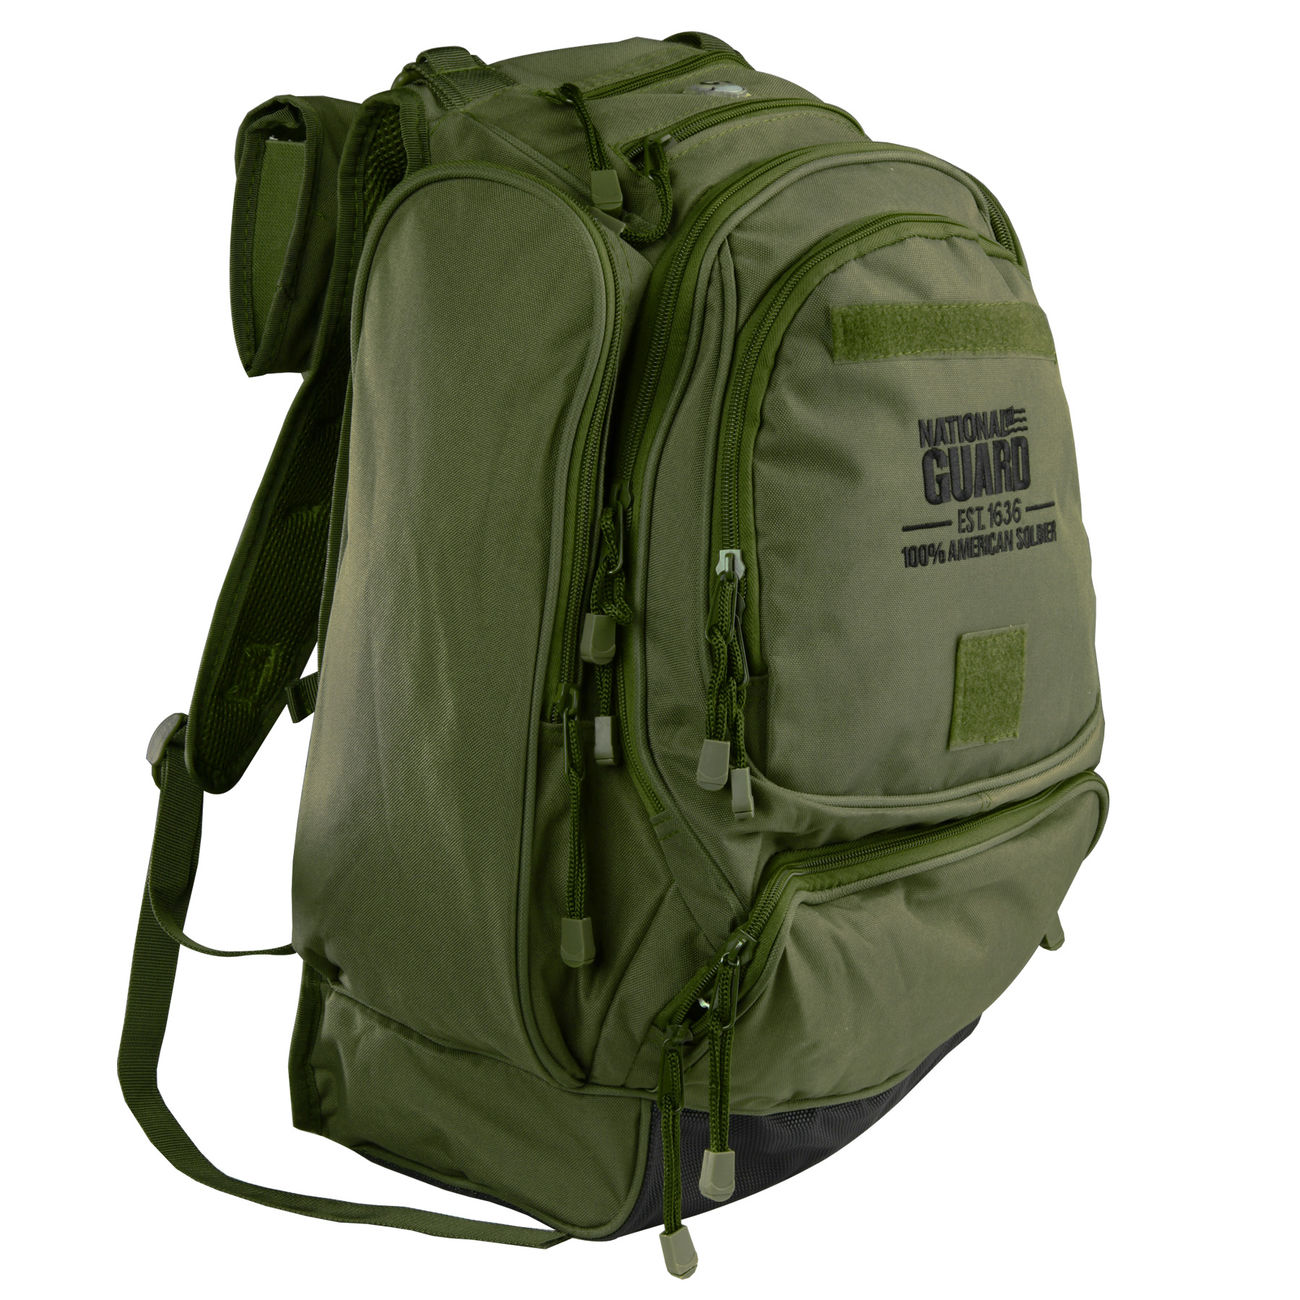 US Rucksack National Guard oliv 0